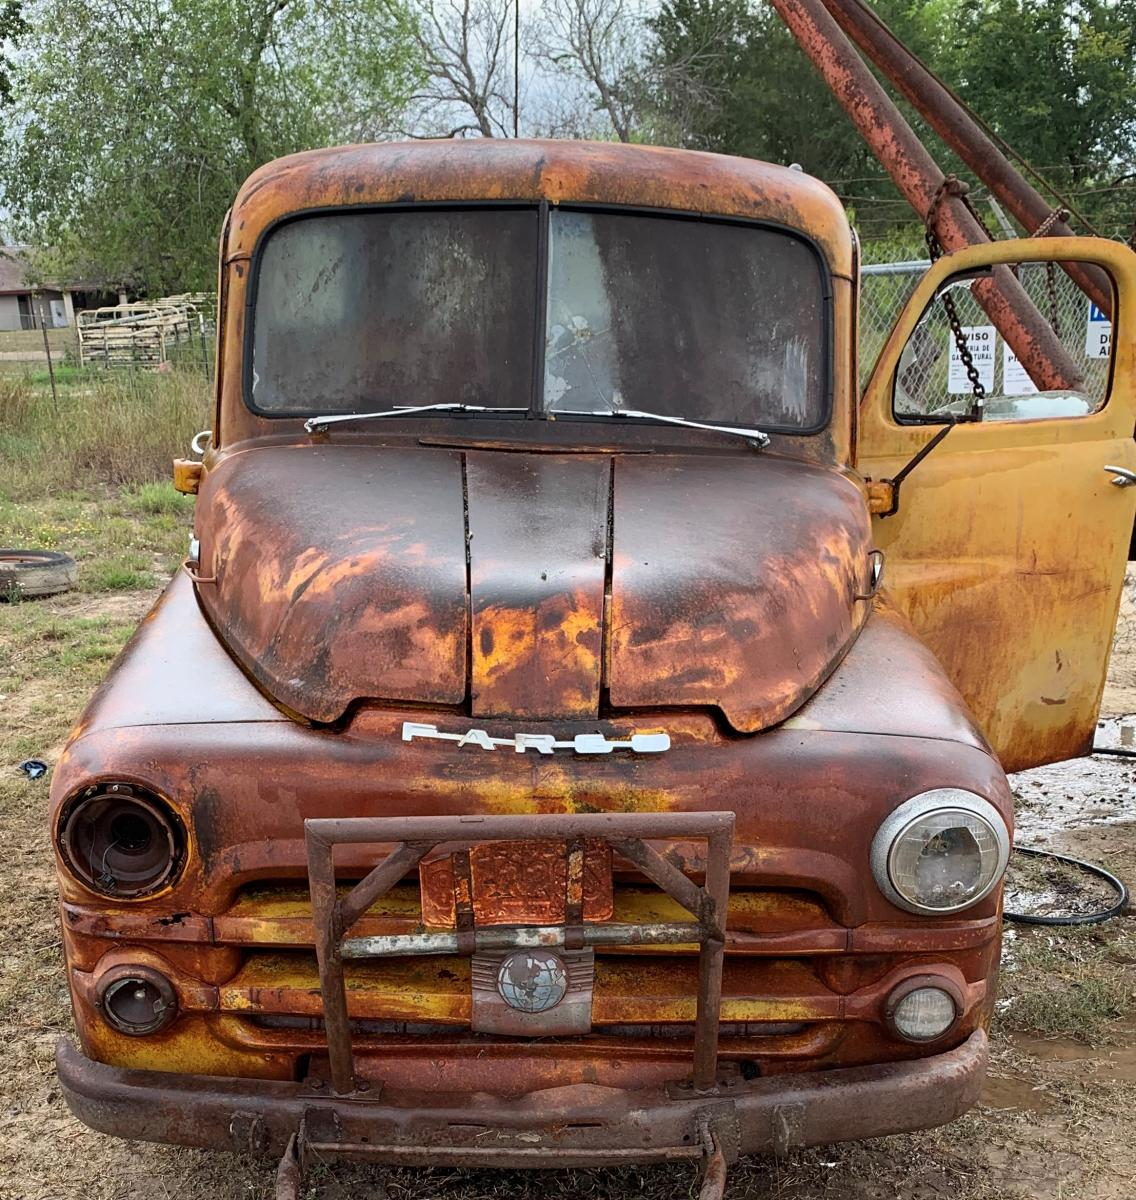 1948 Dodge Fargo Any Knowledge Is Appreciated Dodge Trucks Antique Automobile Club Of America Discussion Forums